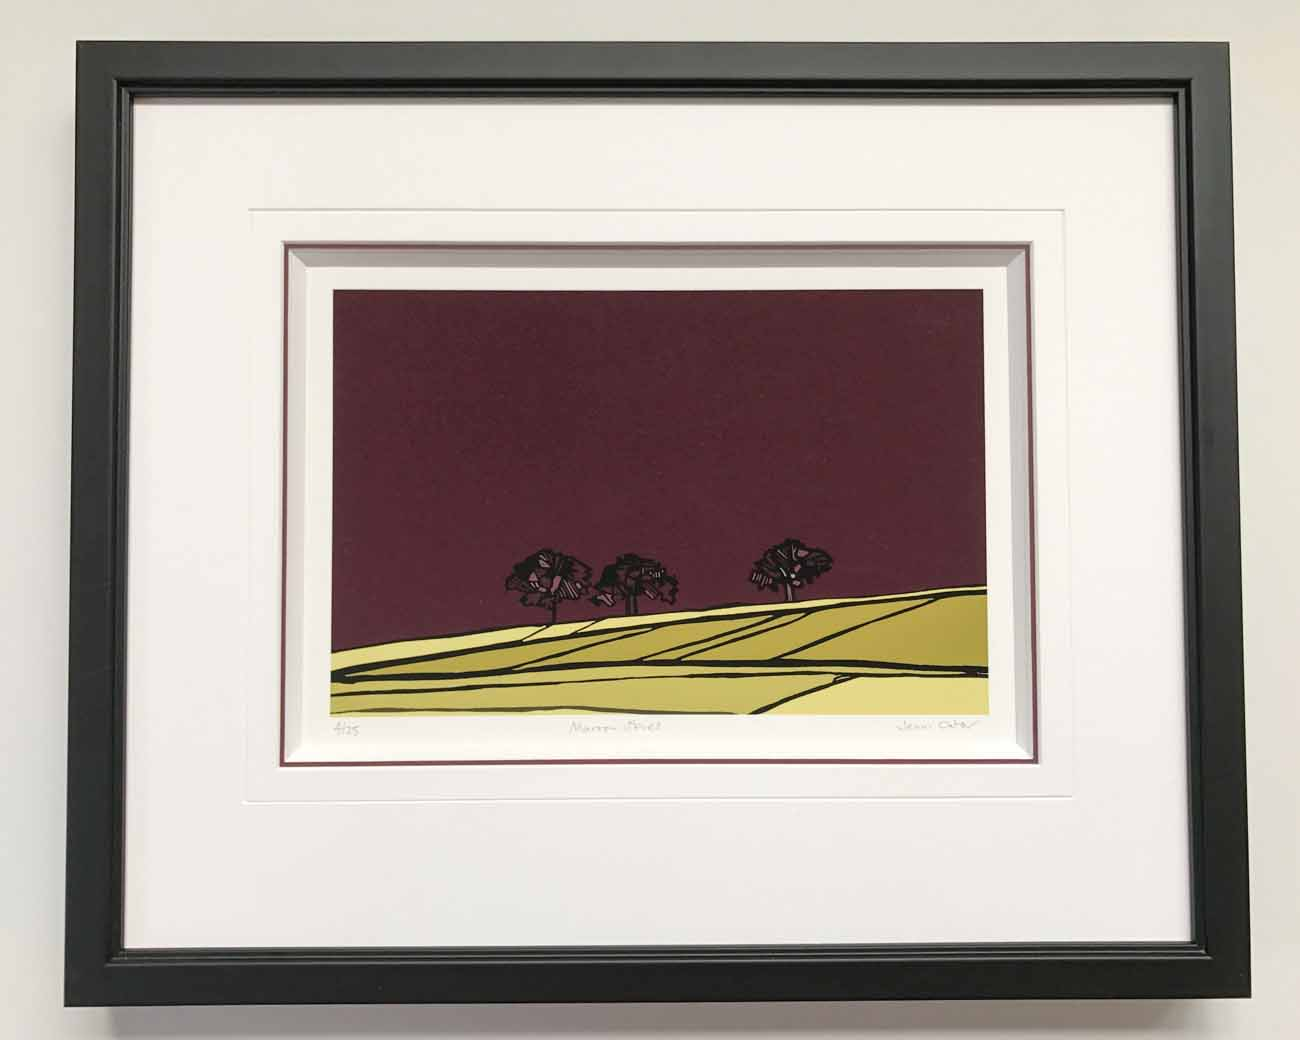 Lino cut picture by Jenni Cator | Framed by Jules Sainter at Lovingly Framed